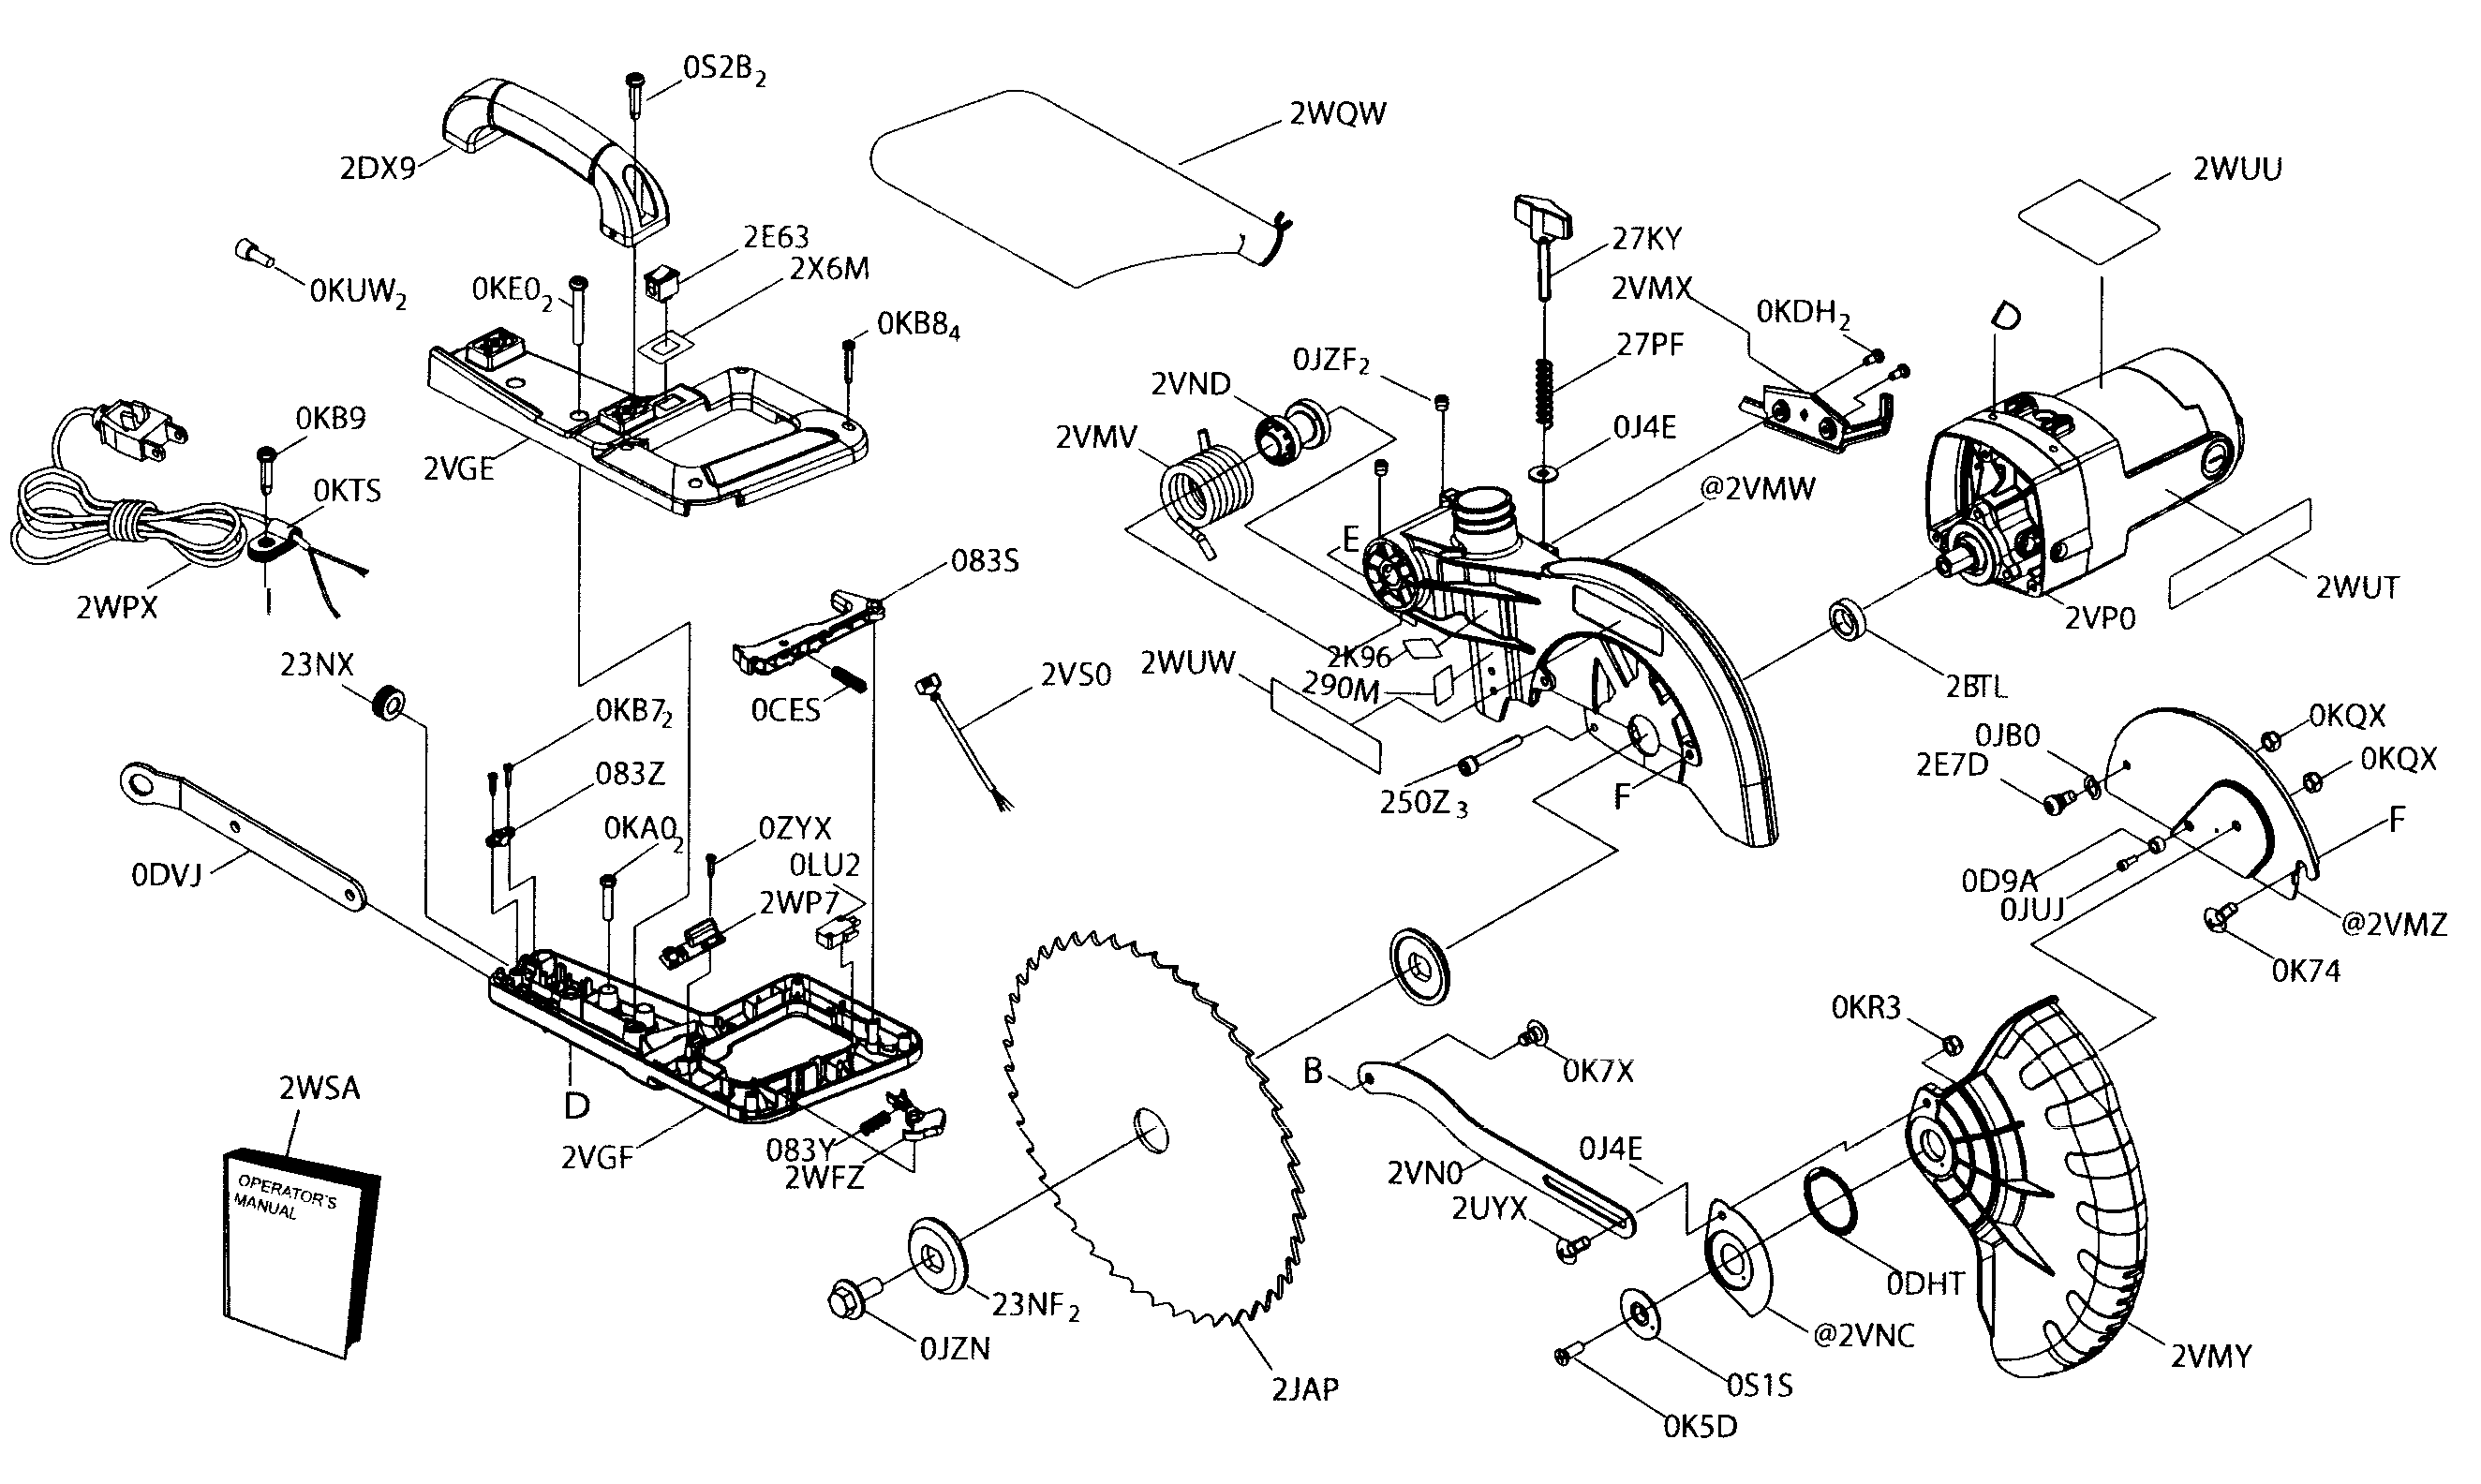 arm assy diagram parts list for model 137212371 craftsman parts saw parts searspartsdirect [ 2648 x 1584 Pixel ]